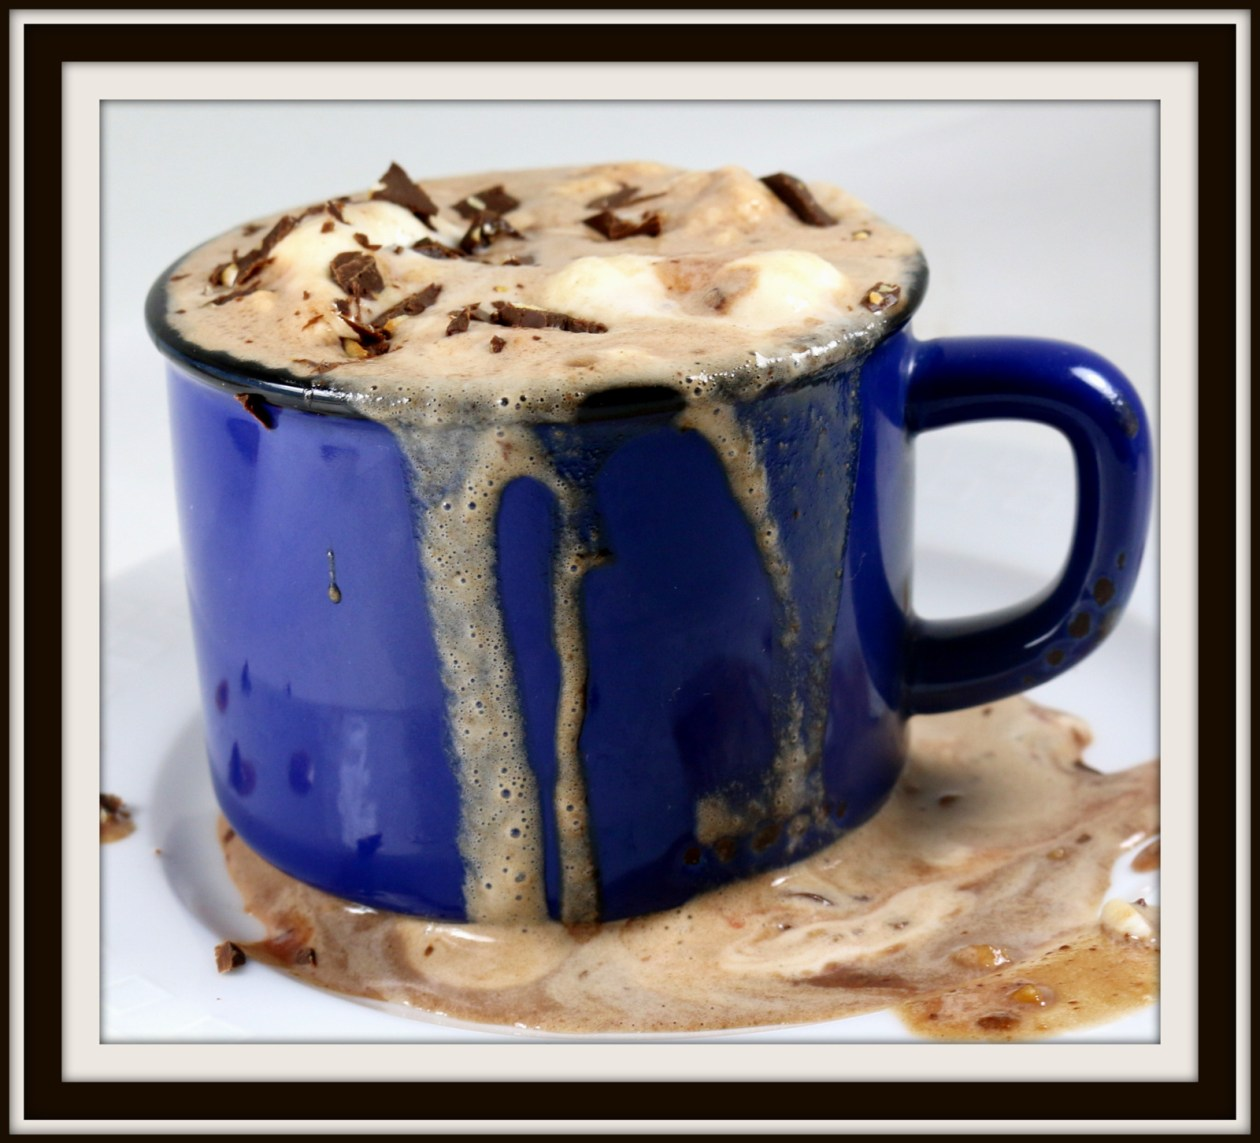 homemade hot chocolate from the best food blog 5 star cookies-enjoy